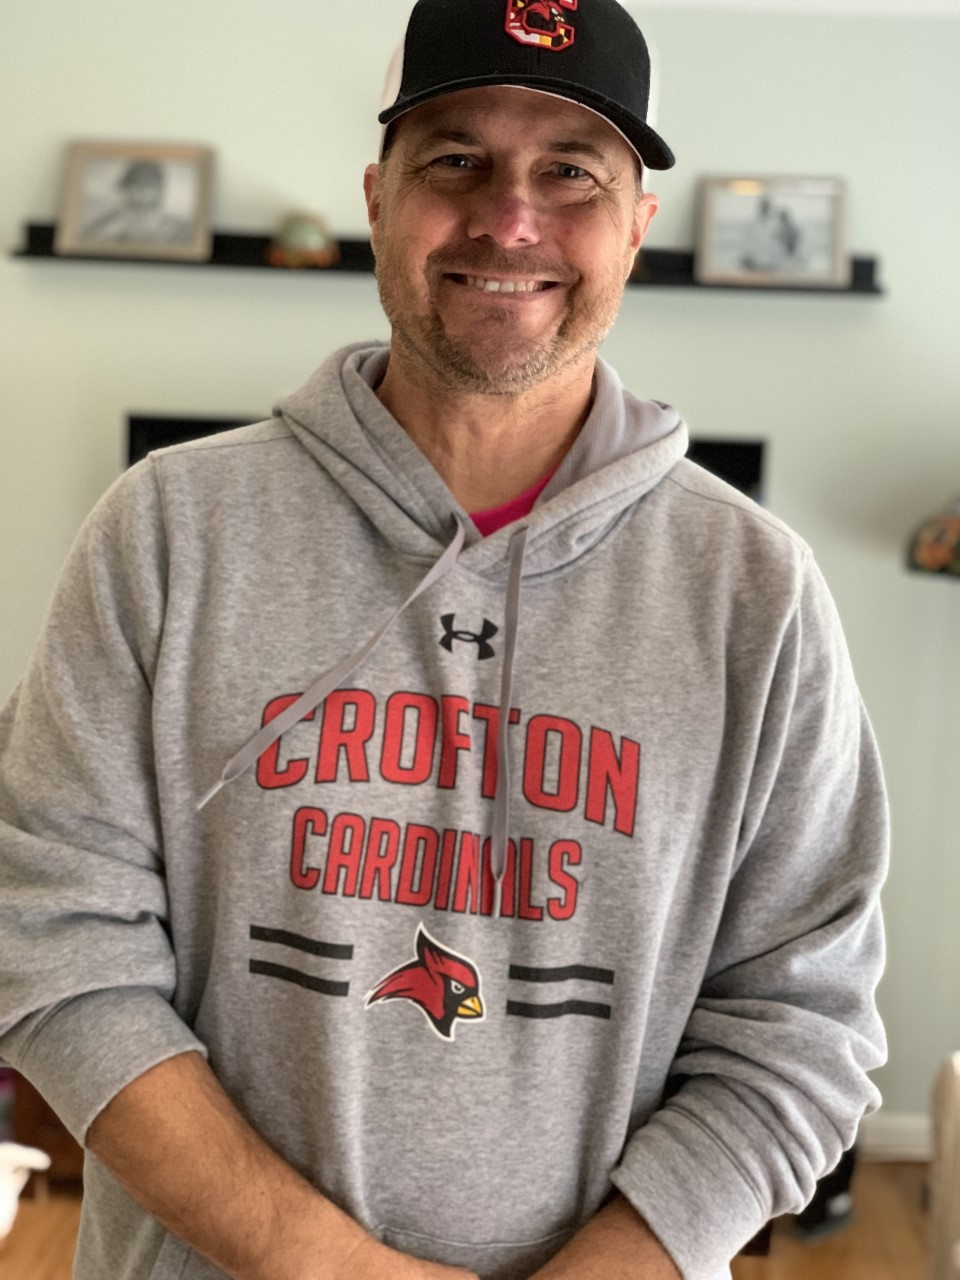 Crofton's Tim Stedman Named as a Finalist for AACPS Teacher of the Year